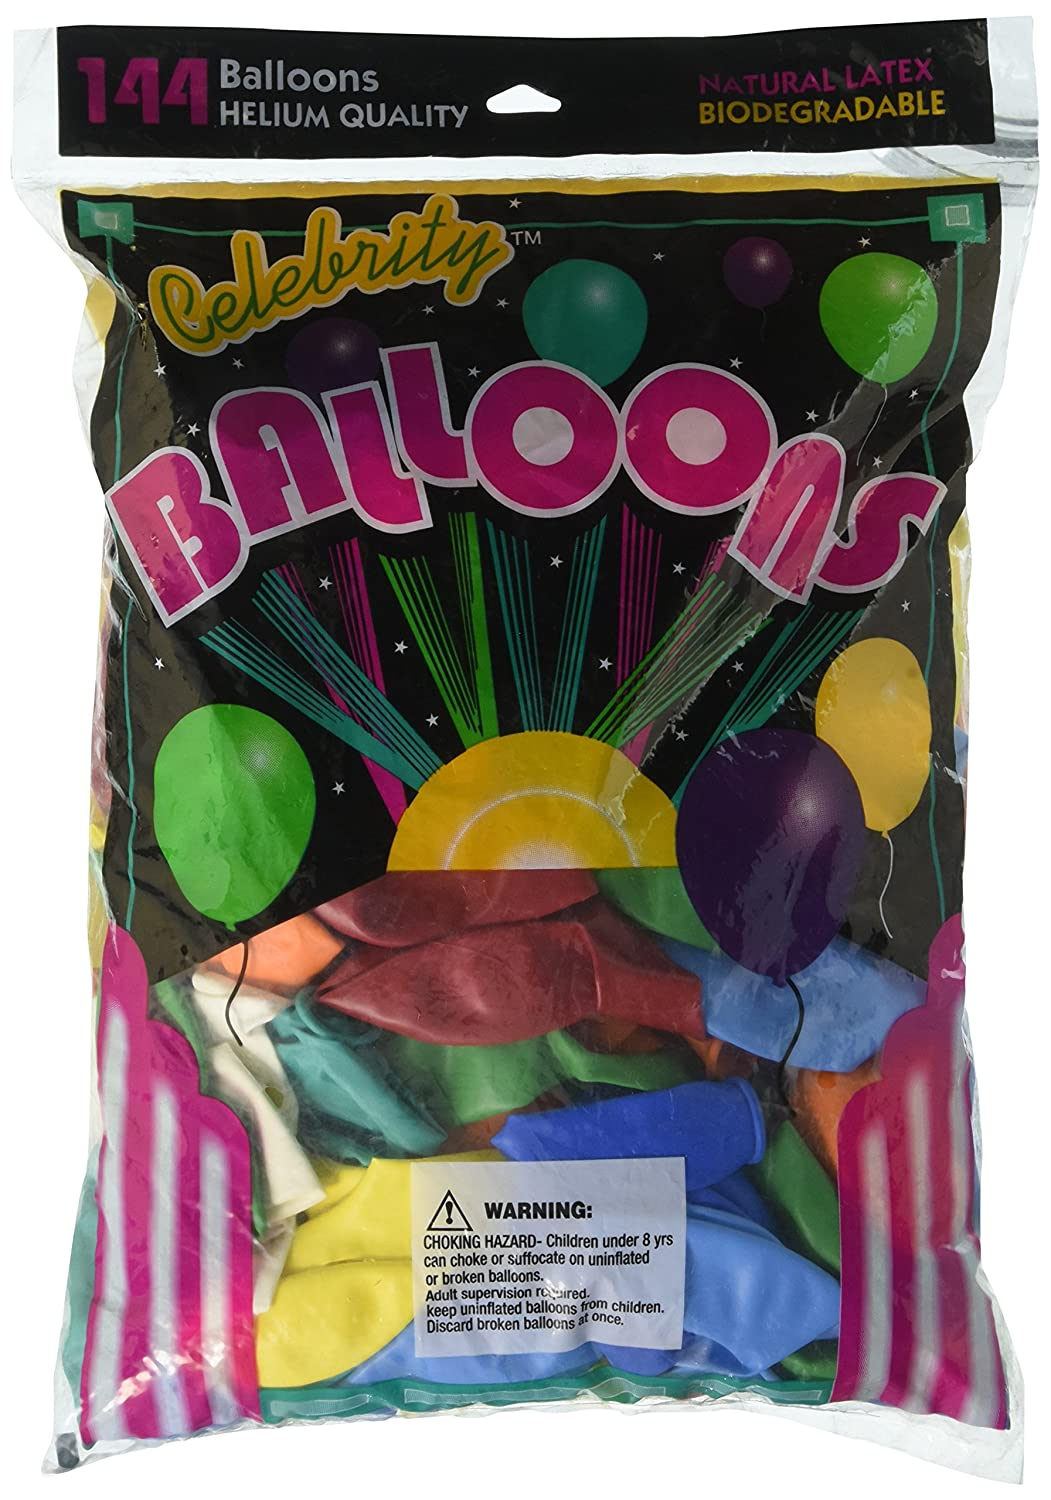 12 Assorted Colors Tablemate/Â Helium-Quality Latex Balloons 144 Per Pack Tablemate.1200